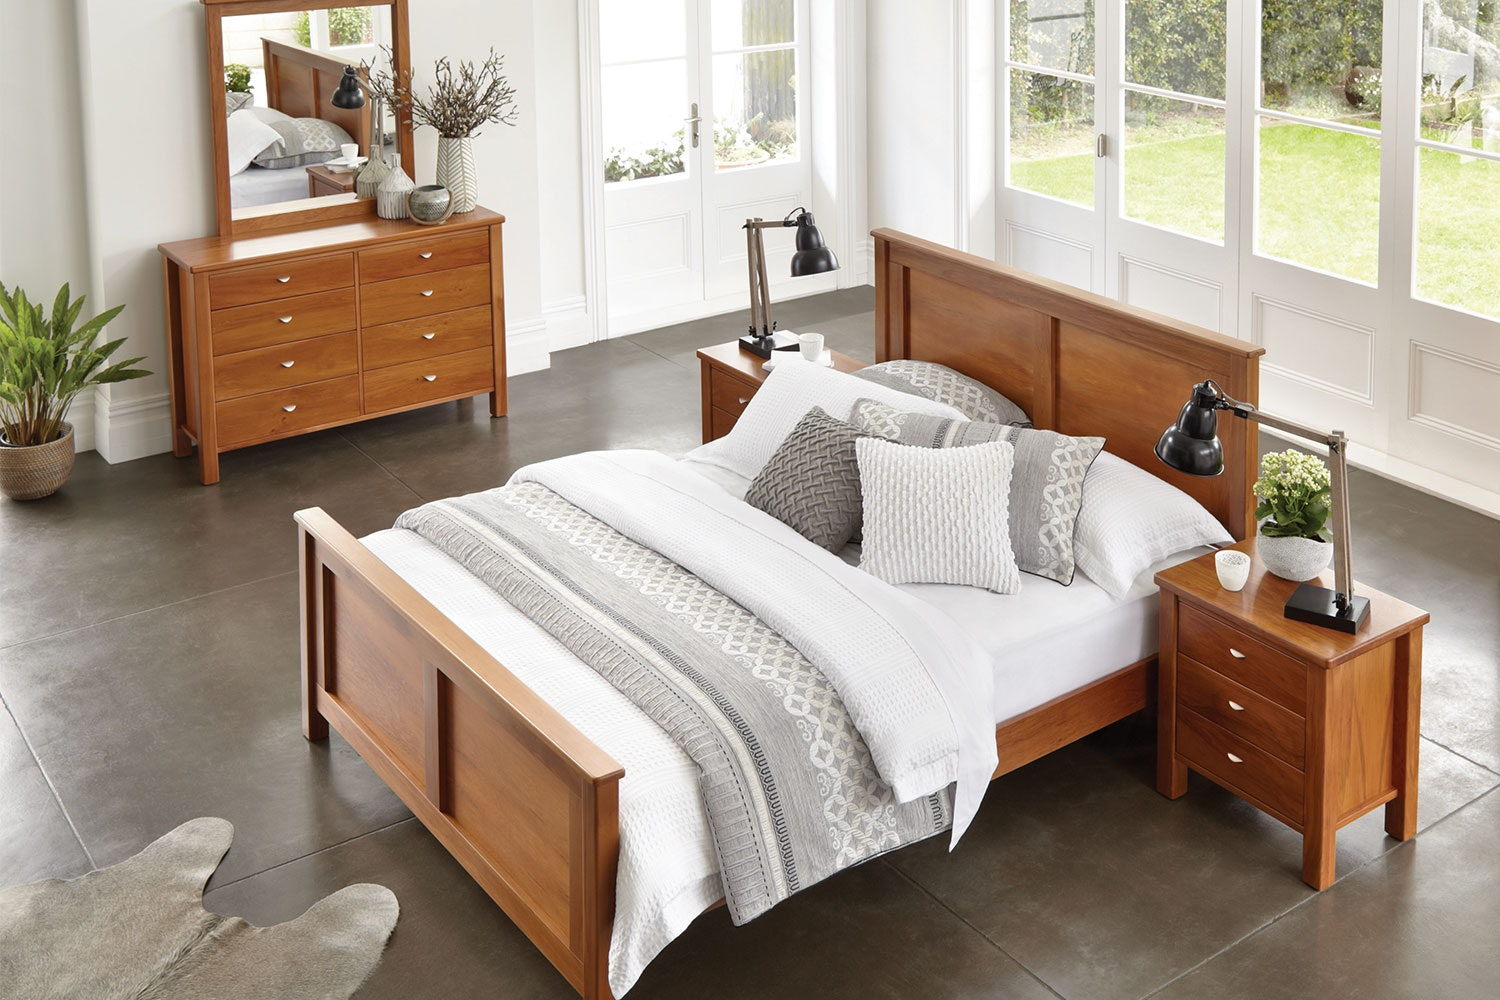 Riversdale 4 Piece Bedroom Suite by Marlex Furniture